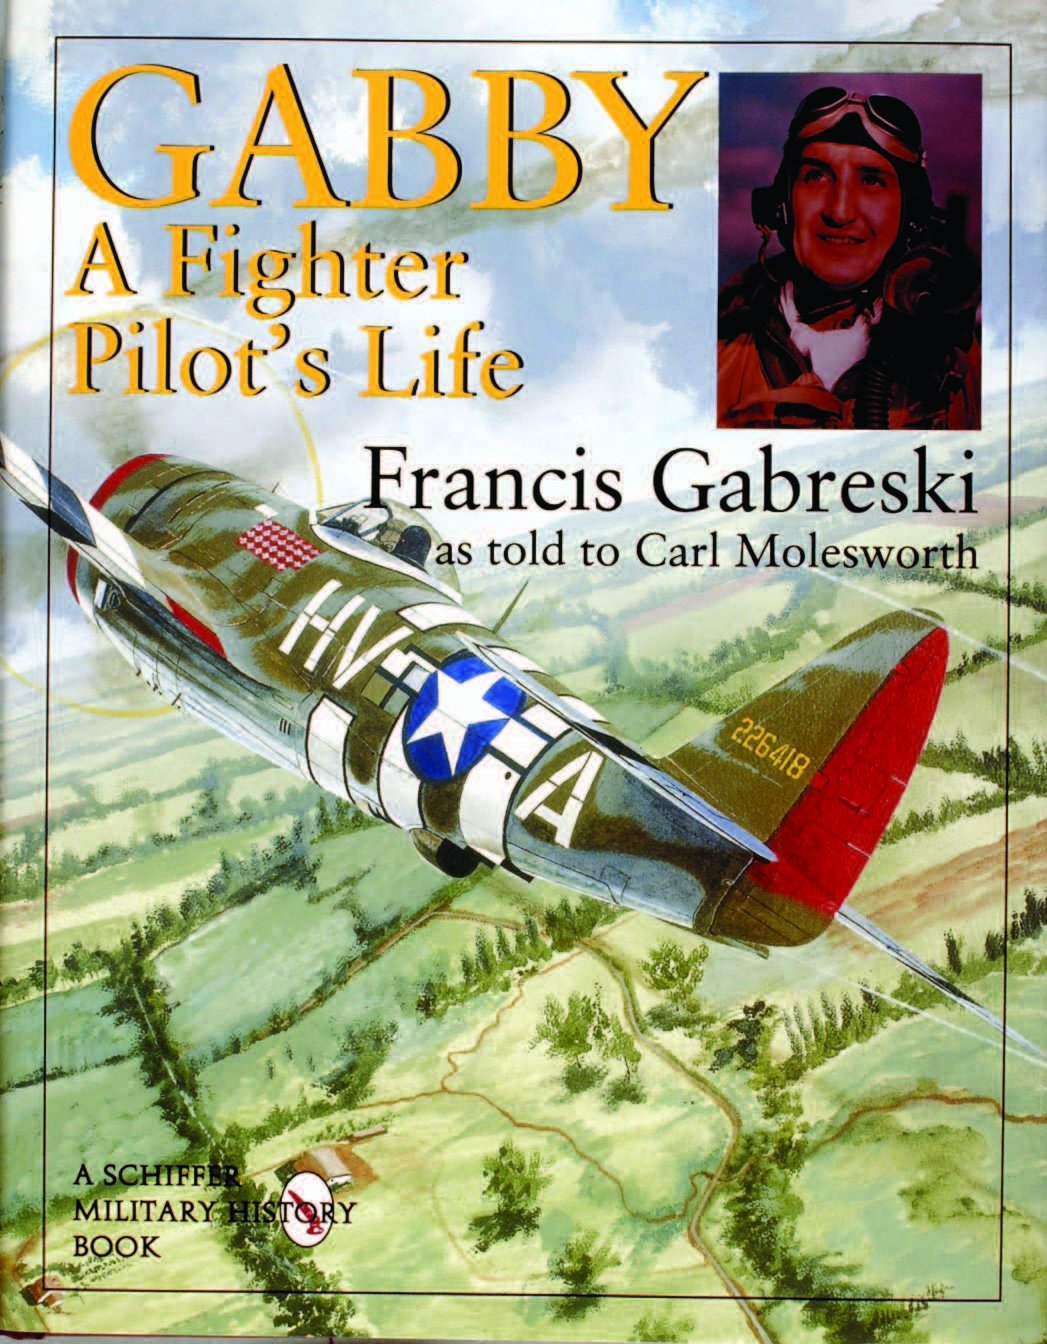 Gabby: A Fighter Pilot's Life (Schiffer Military History) by Brand: Schiffer Publishing, Ltd.